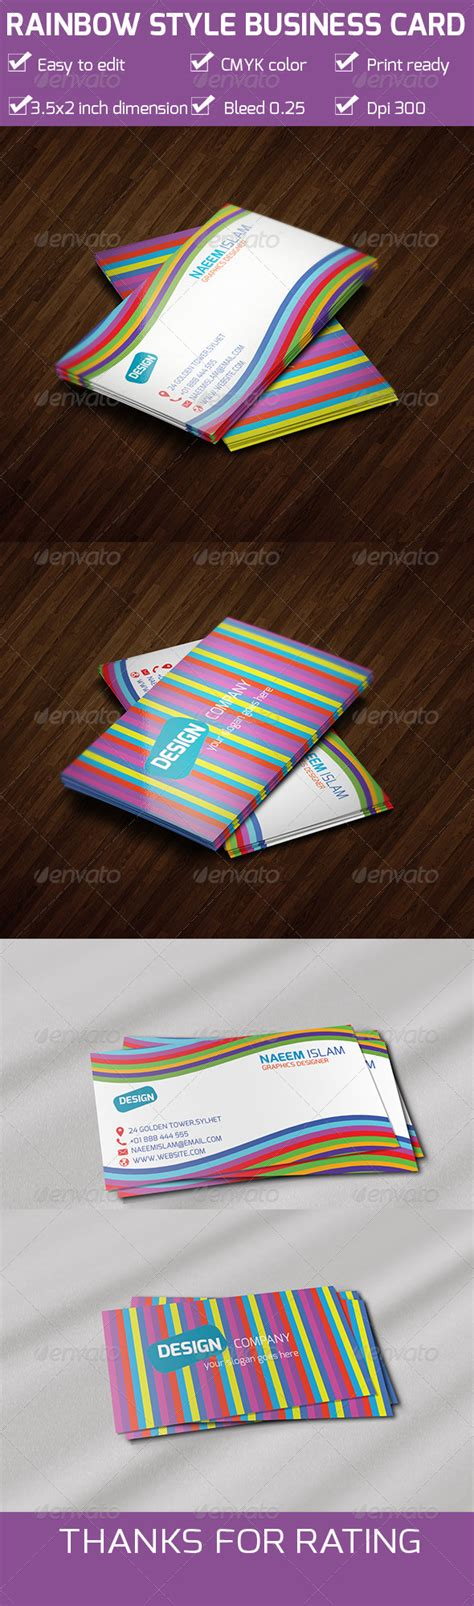 rainbow business card template print template graphicriver rainbow style business card